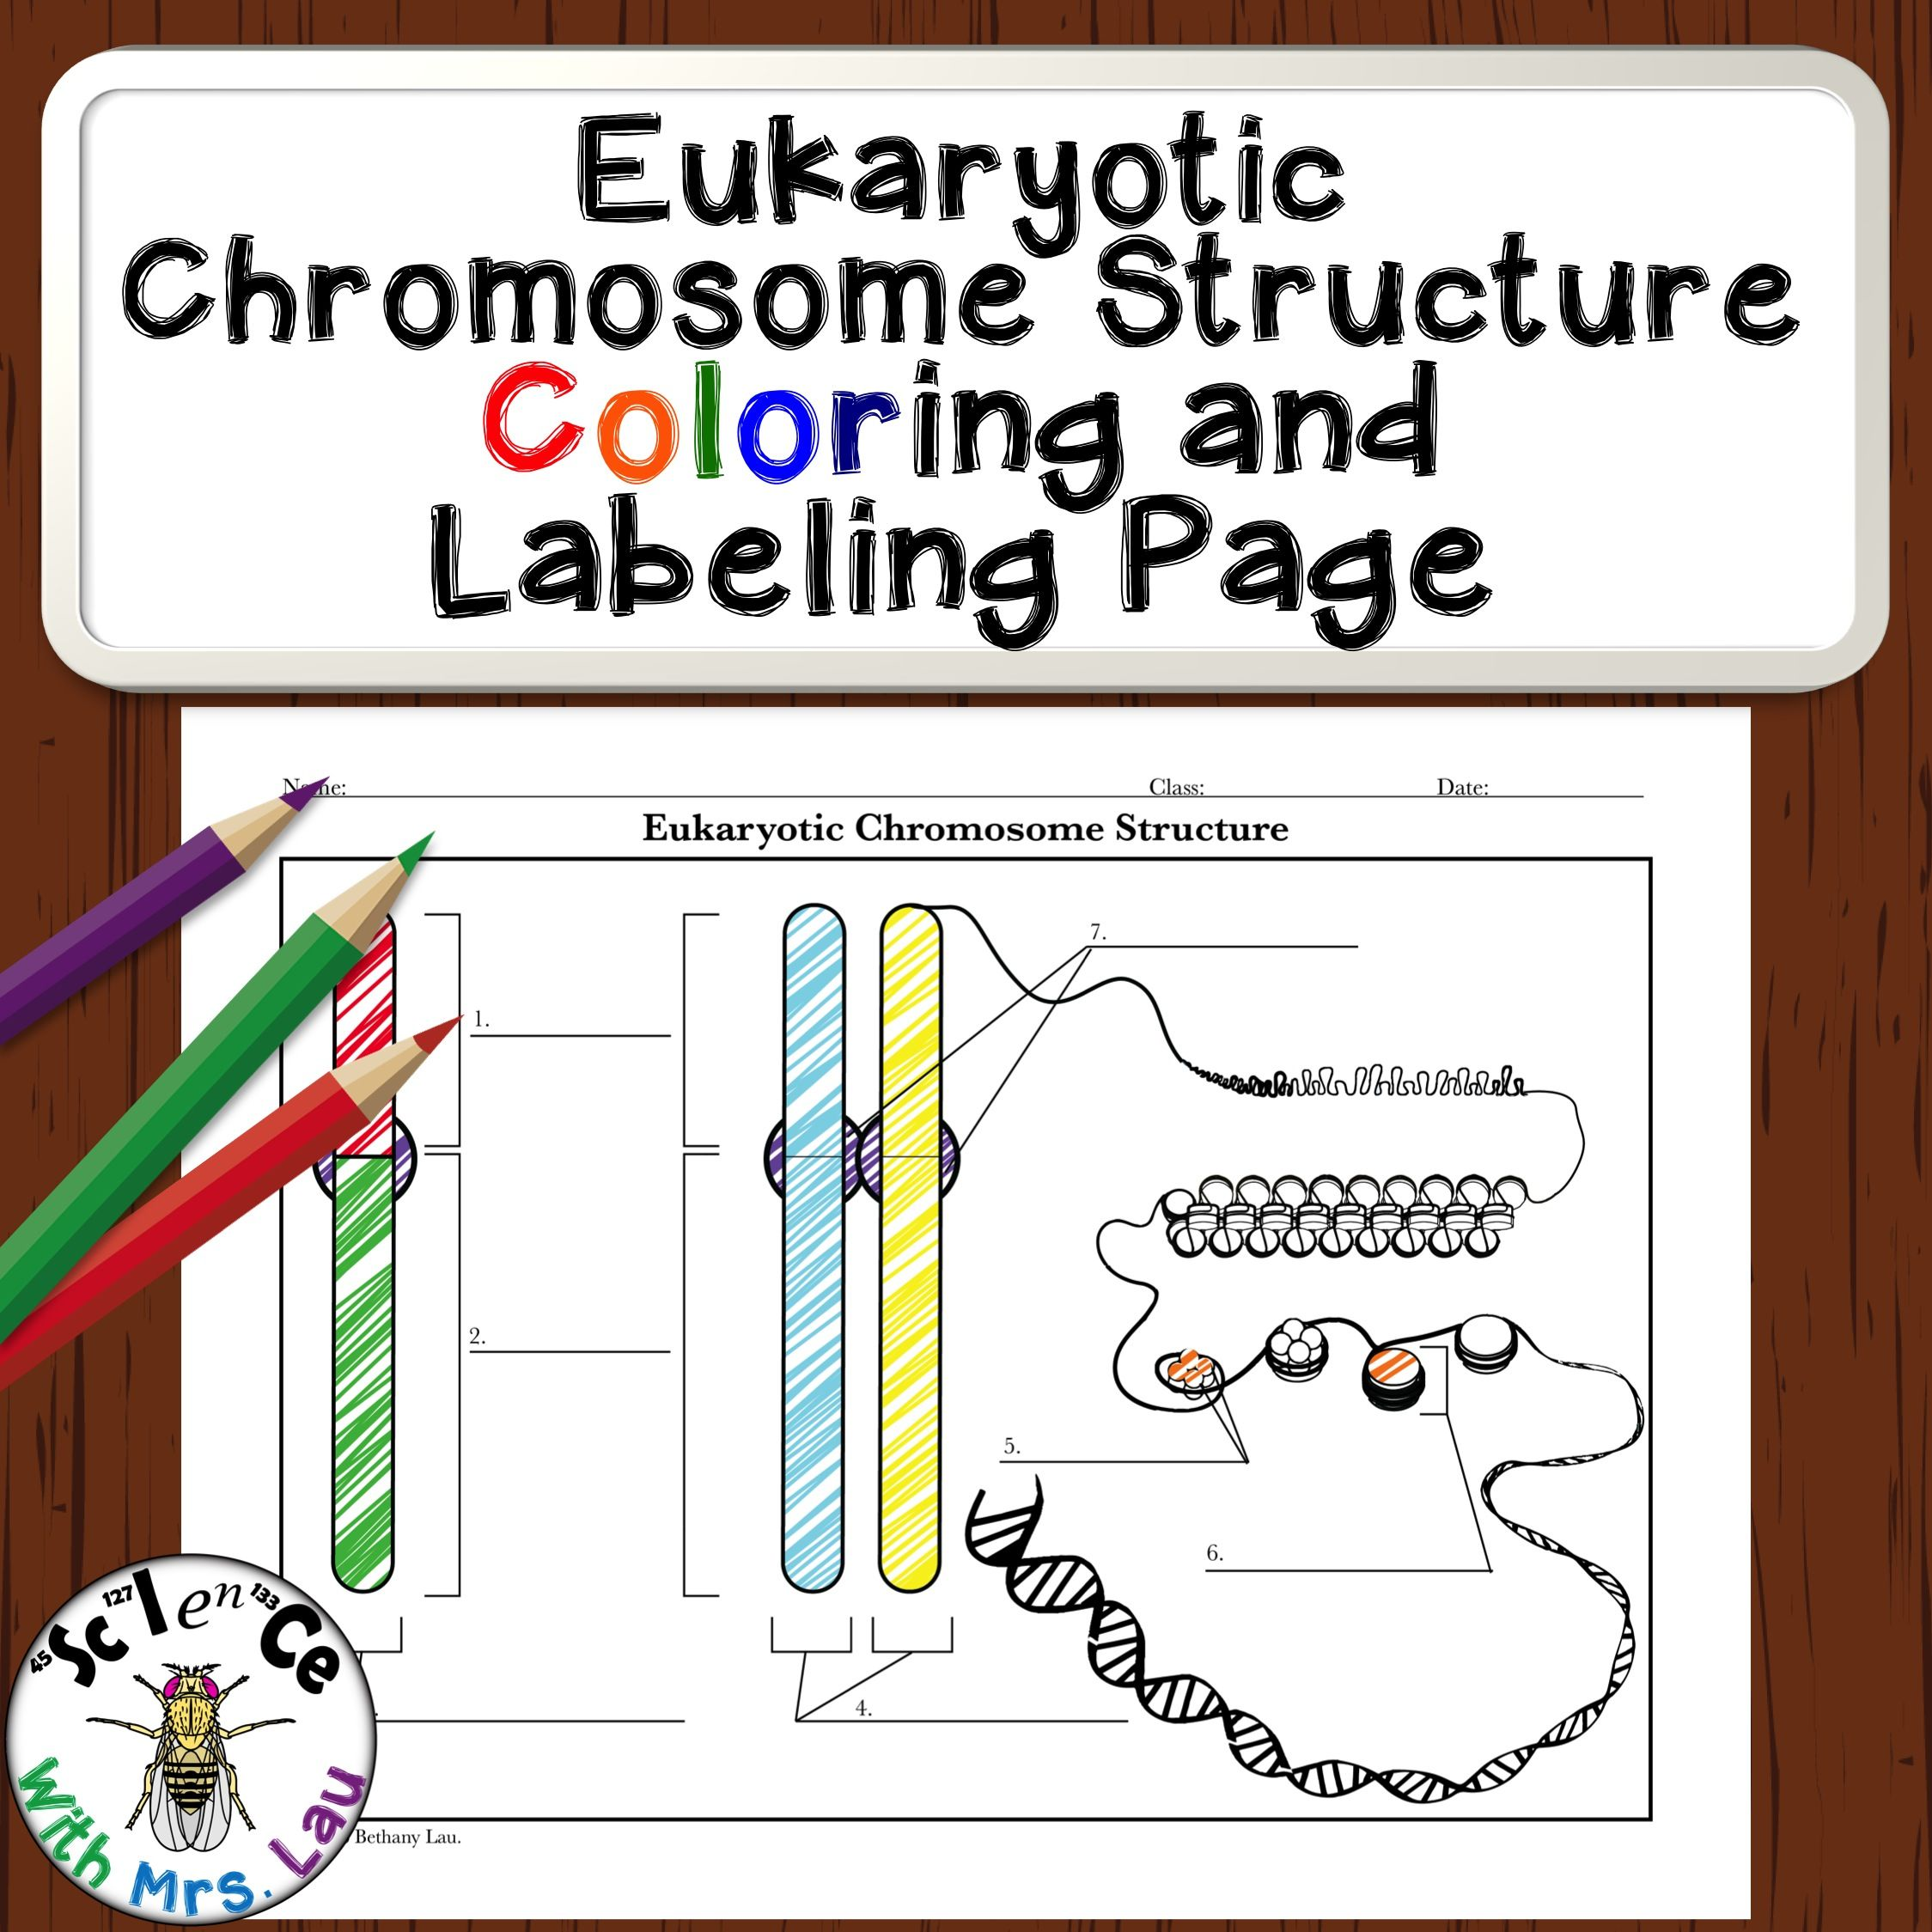 Chromosome Structure Coloring Diagram Page